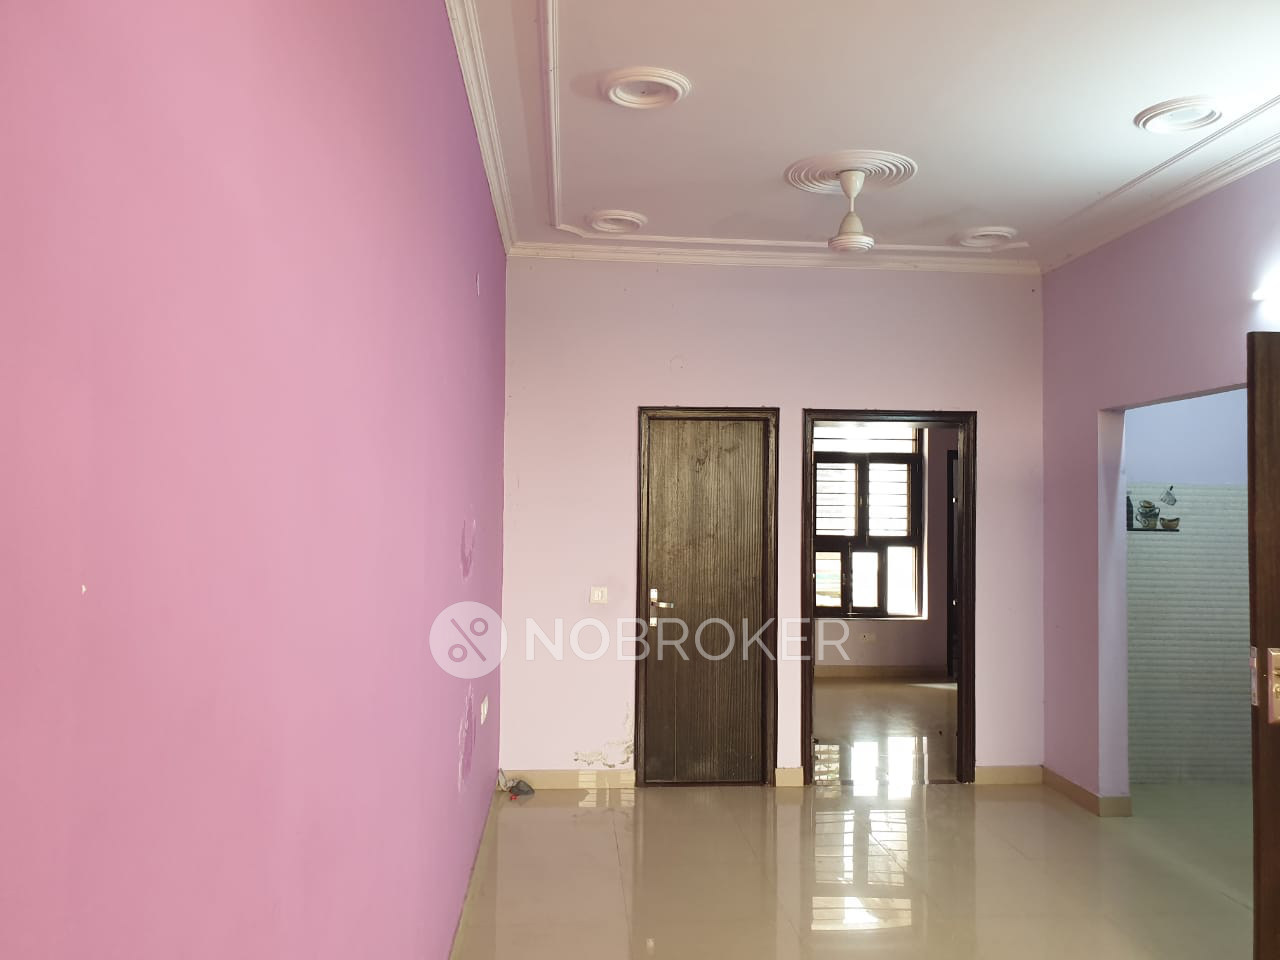 1BHK Flat for rent in Sector 46, Gurgaon